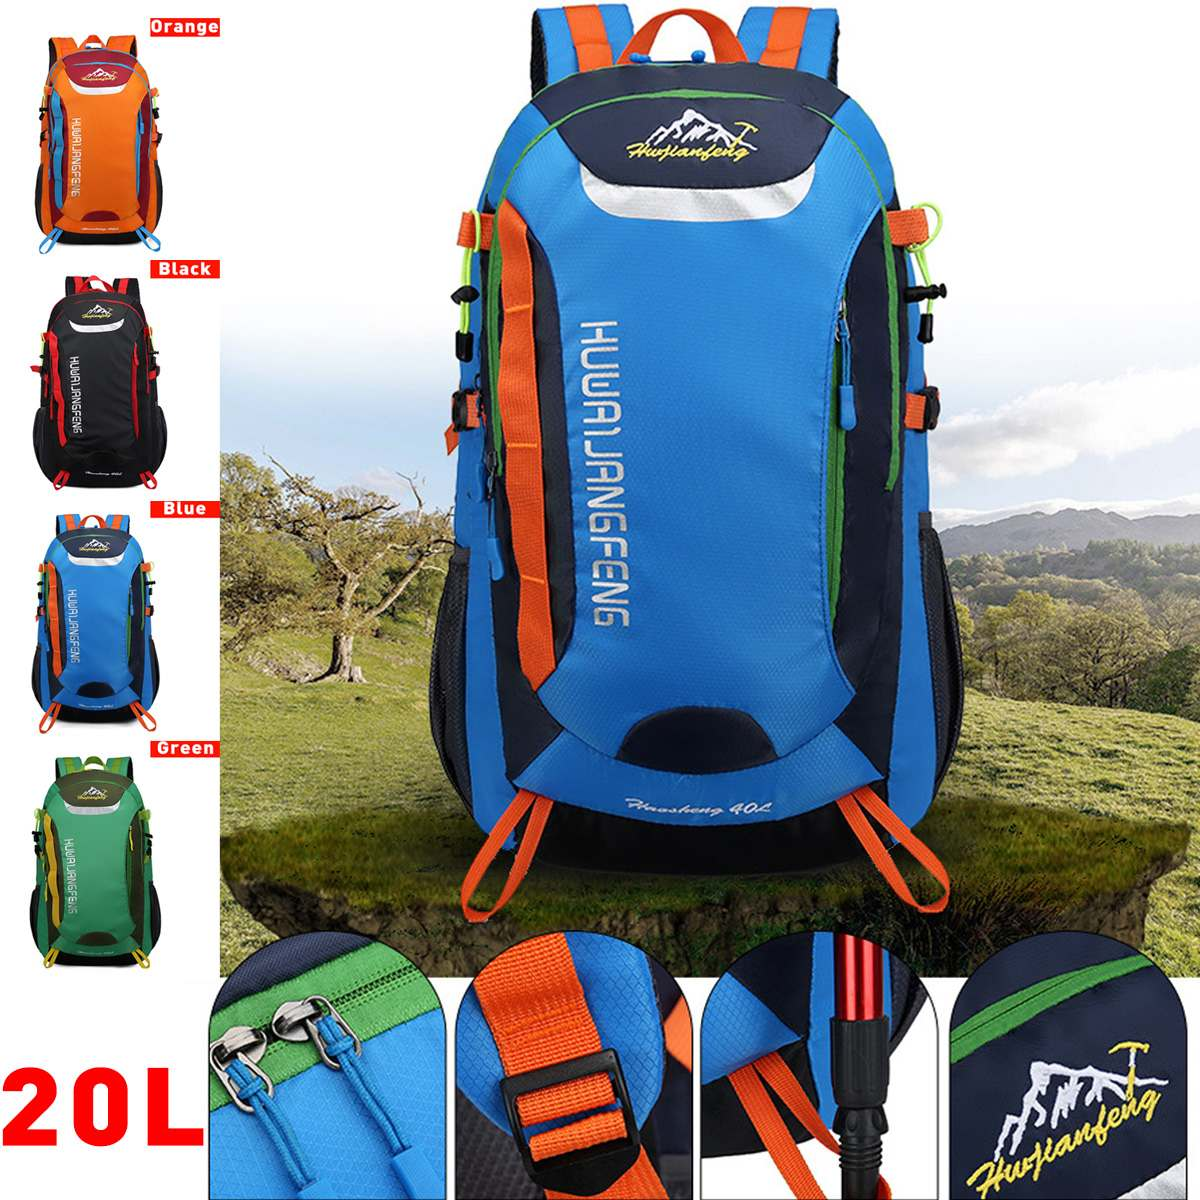 20L Outdoor Sports Mountaineering Backpack Camping Hiking Trekking Rucksack Travel Waterproof Cover Bike Bags For Women Men